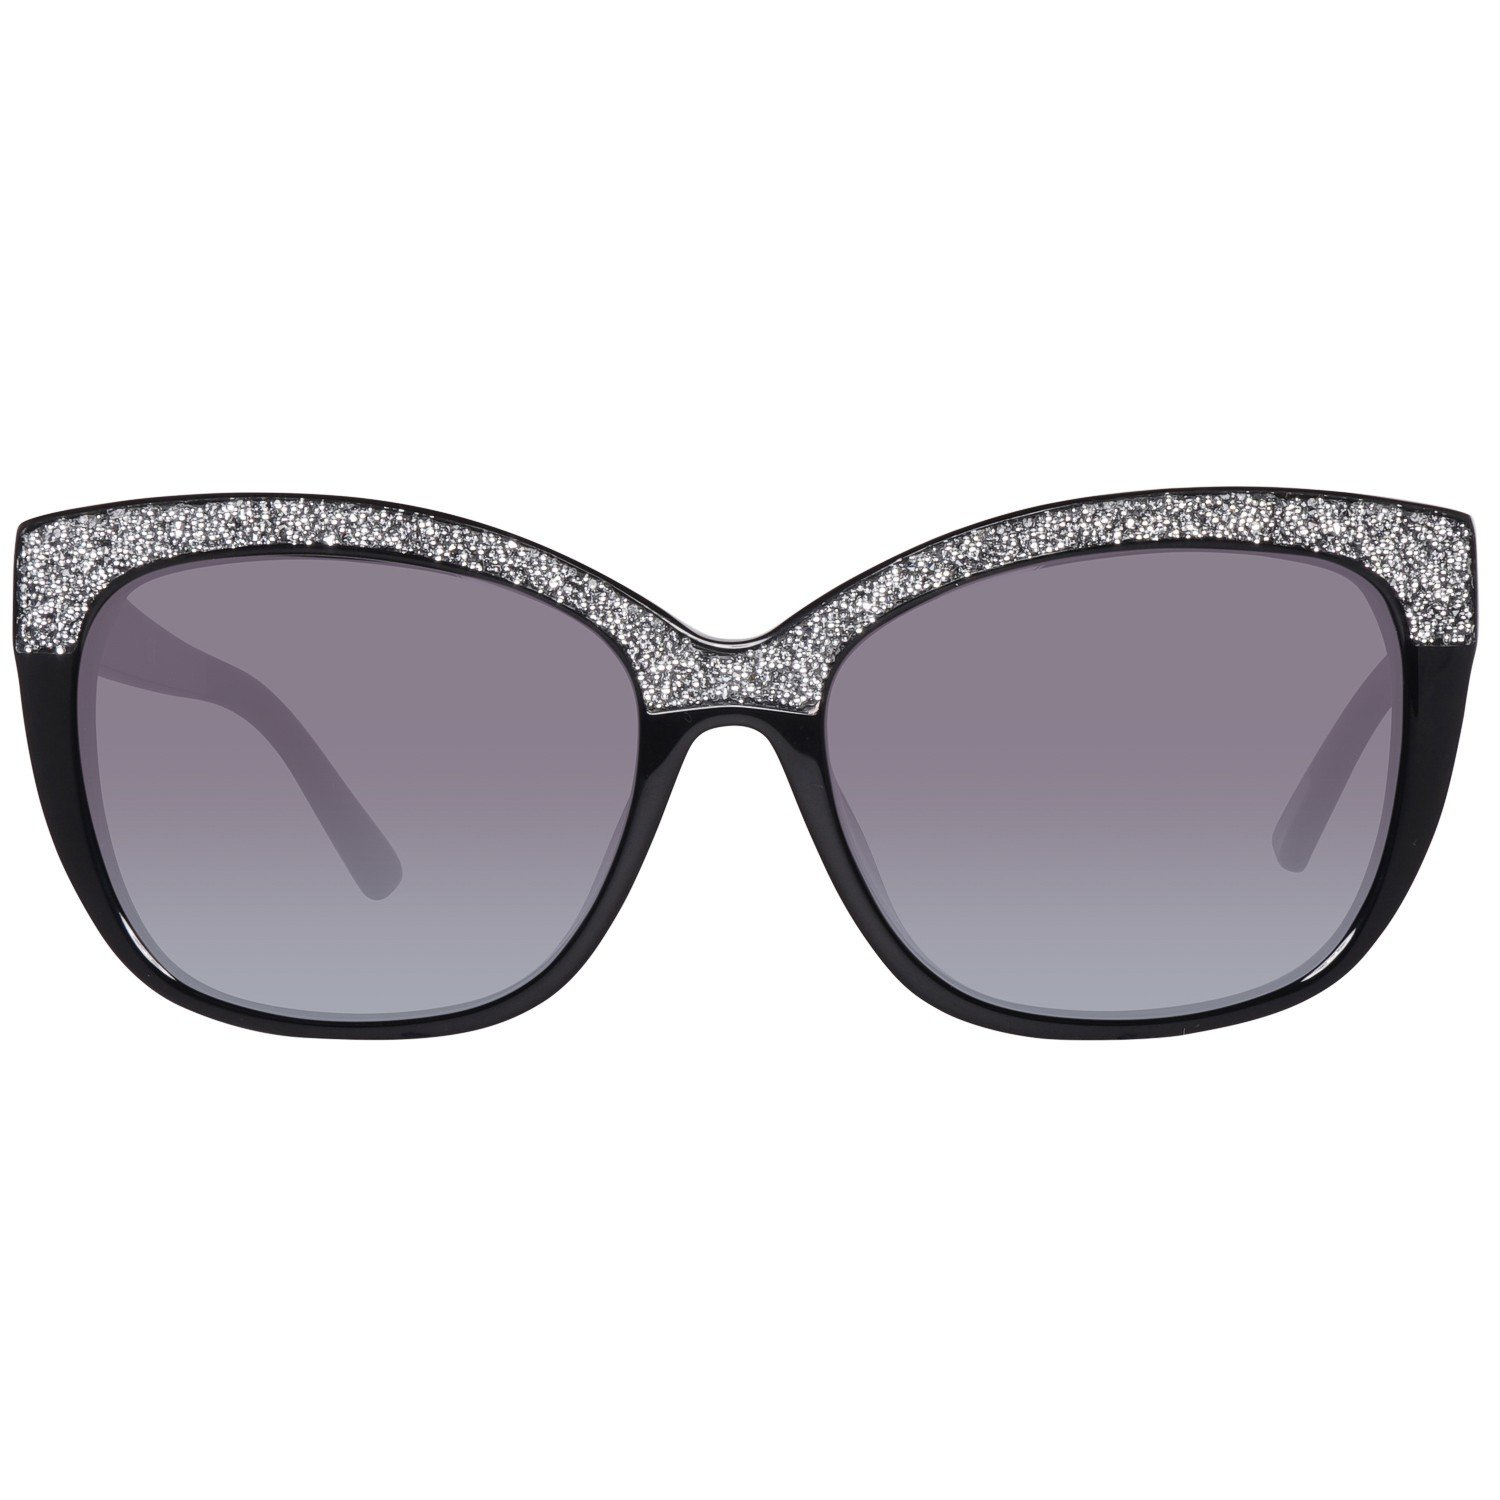 ff820967aae GUESS BY MARCIANO GM0730 Sunglasses 01B Shiny Black 55-16-135   Amazon.co.uk  Clothing